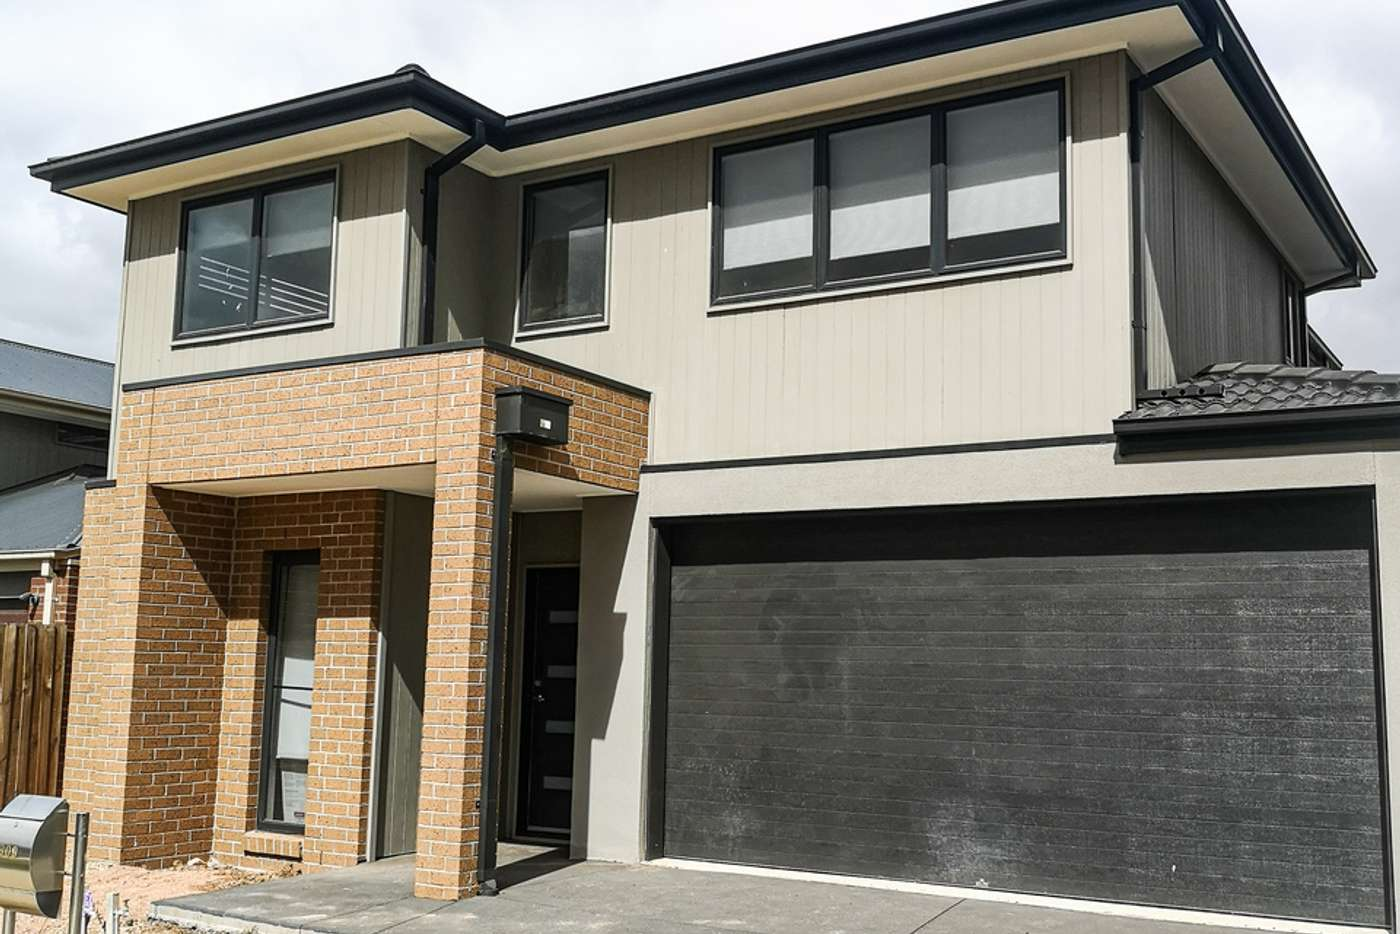 Main view of Homely house listing, 909 Morris Road, Truganina VIC 3029